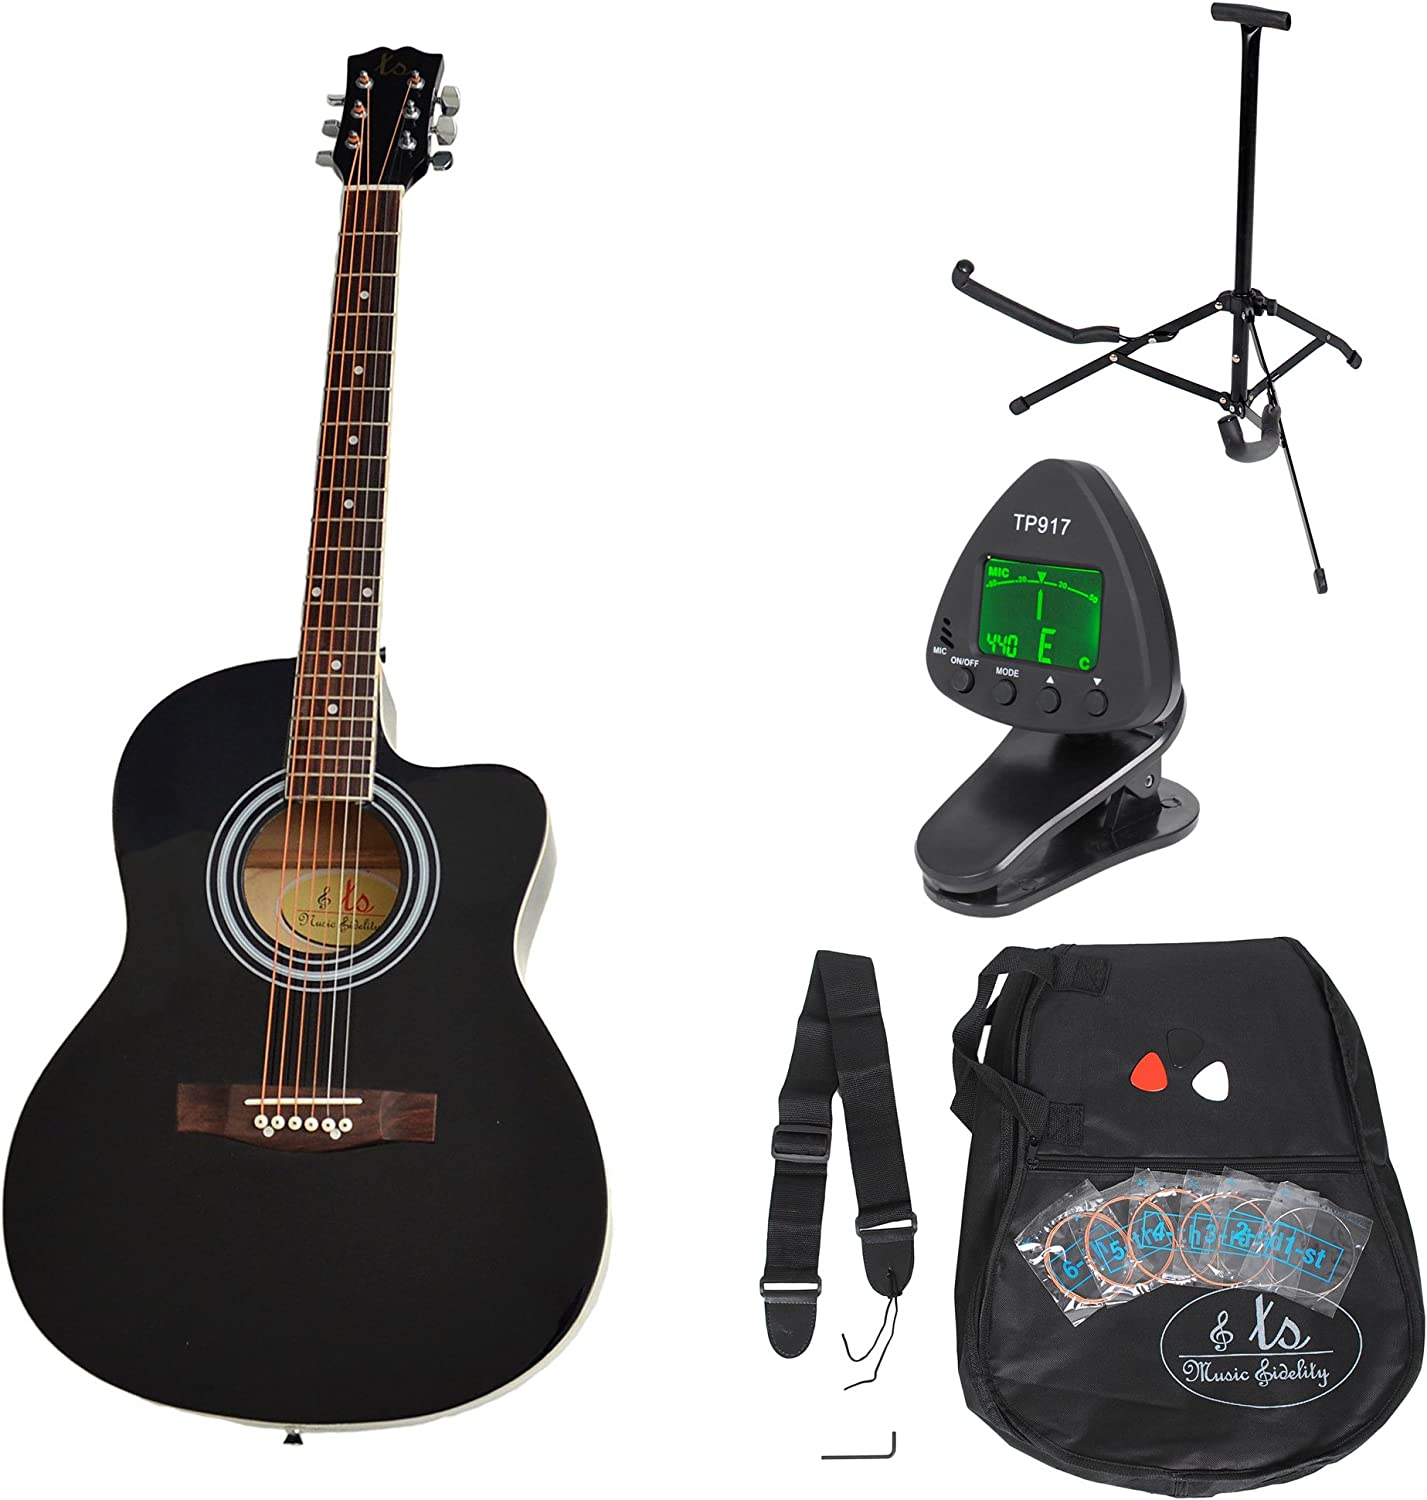 ts-ideen 5331 - Kit de guitarra acústica, color negro: Amazon.es ...